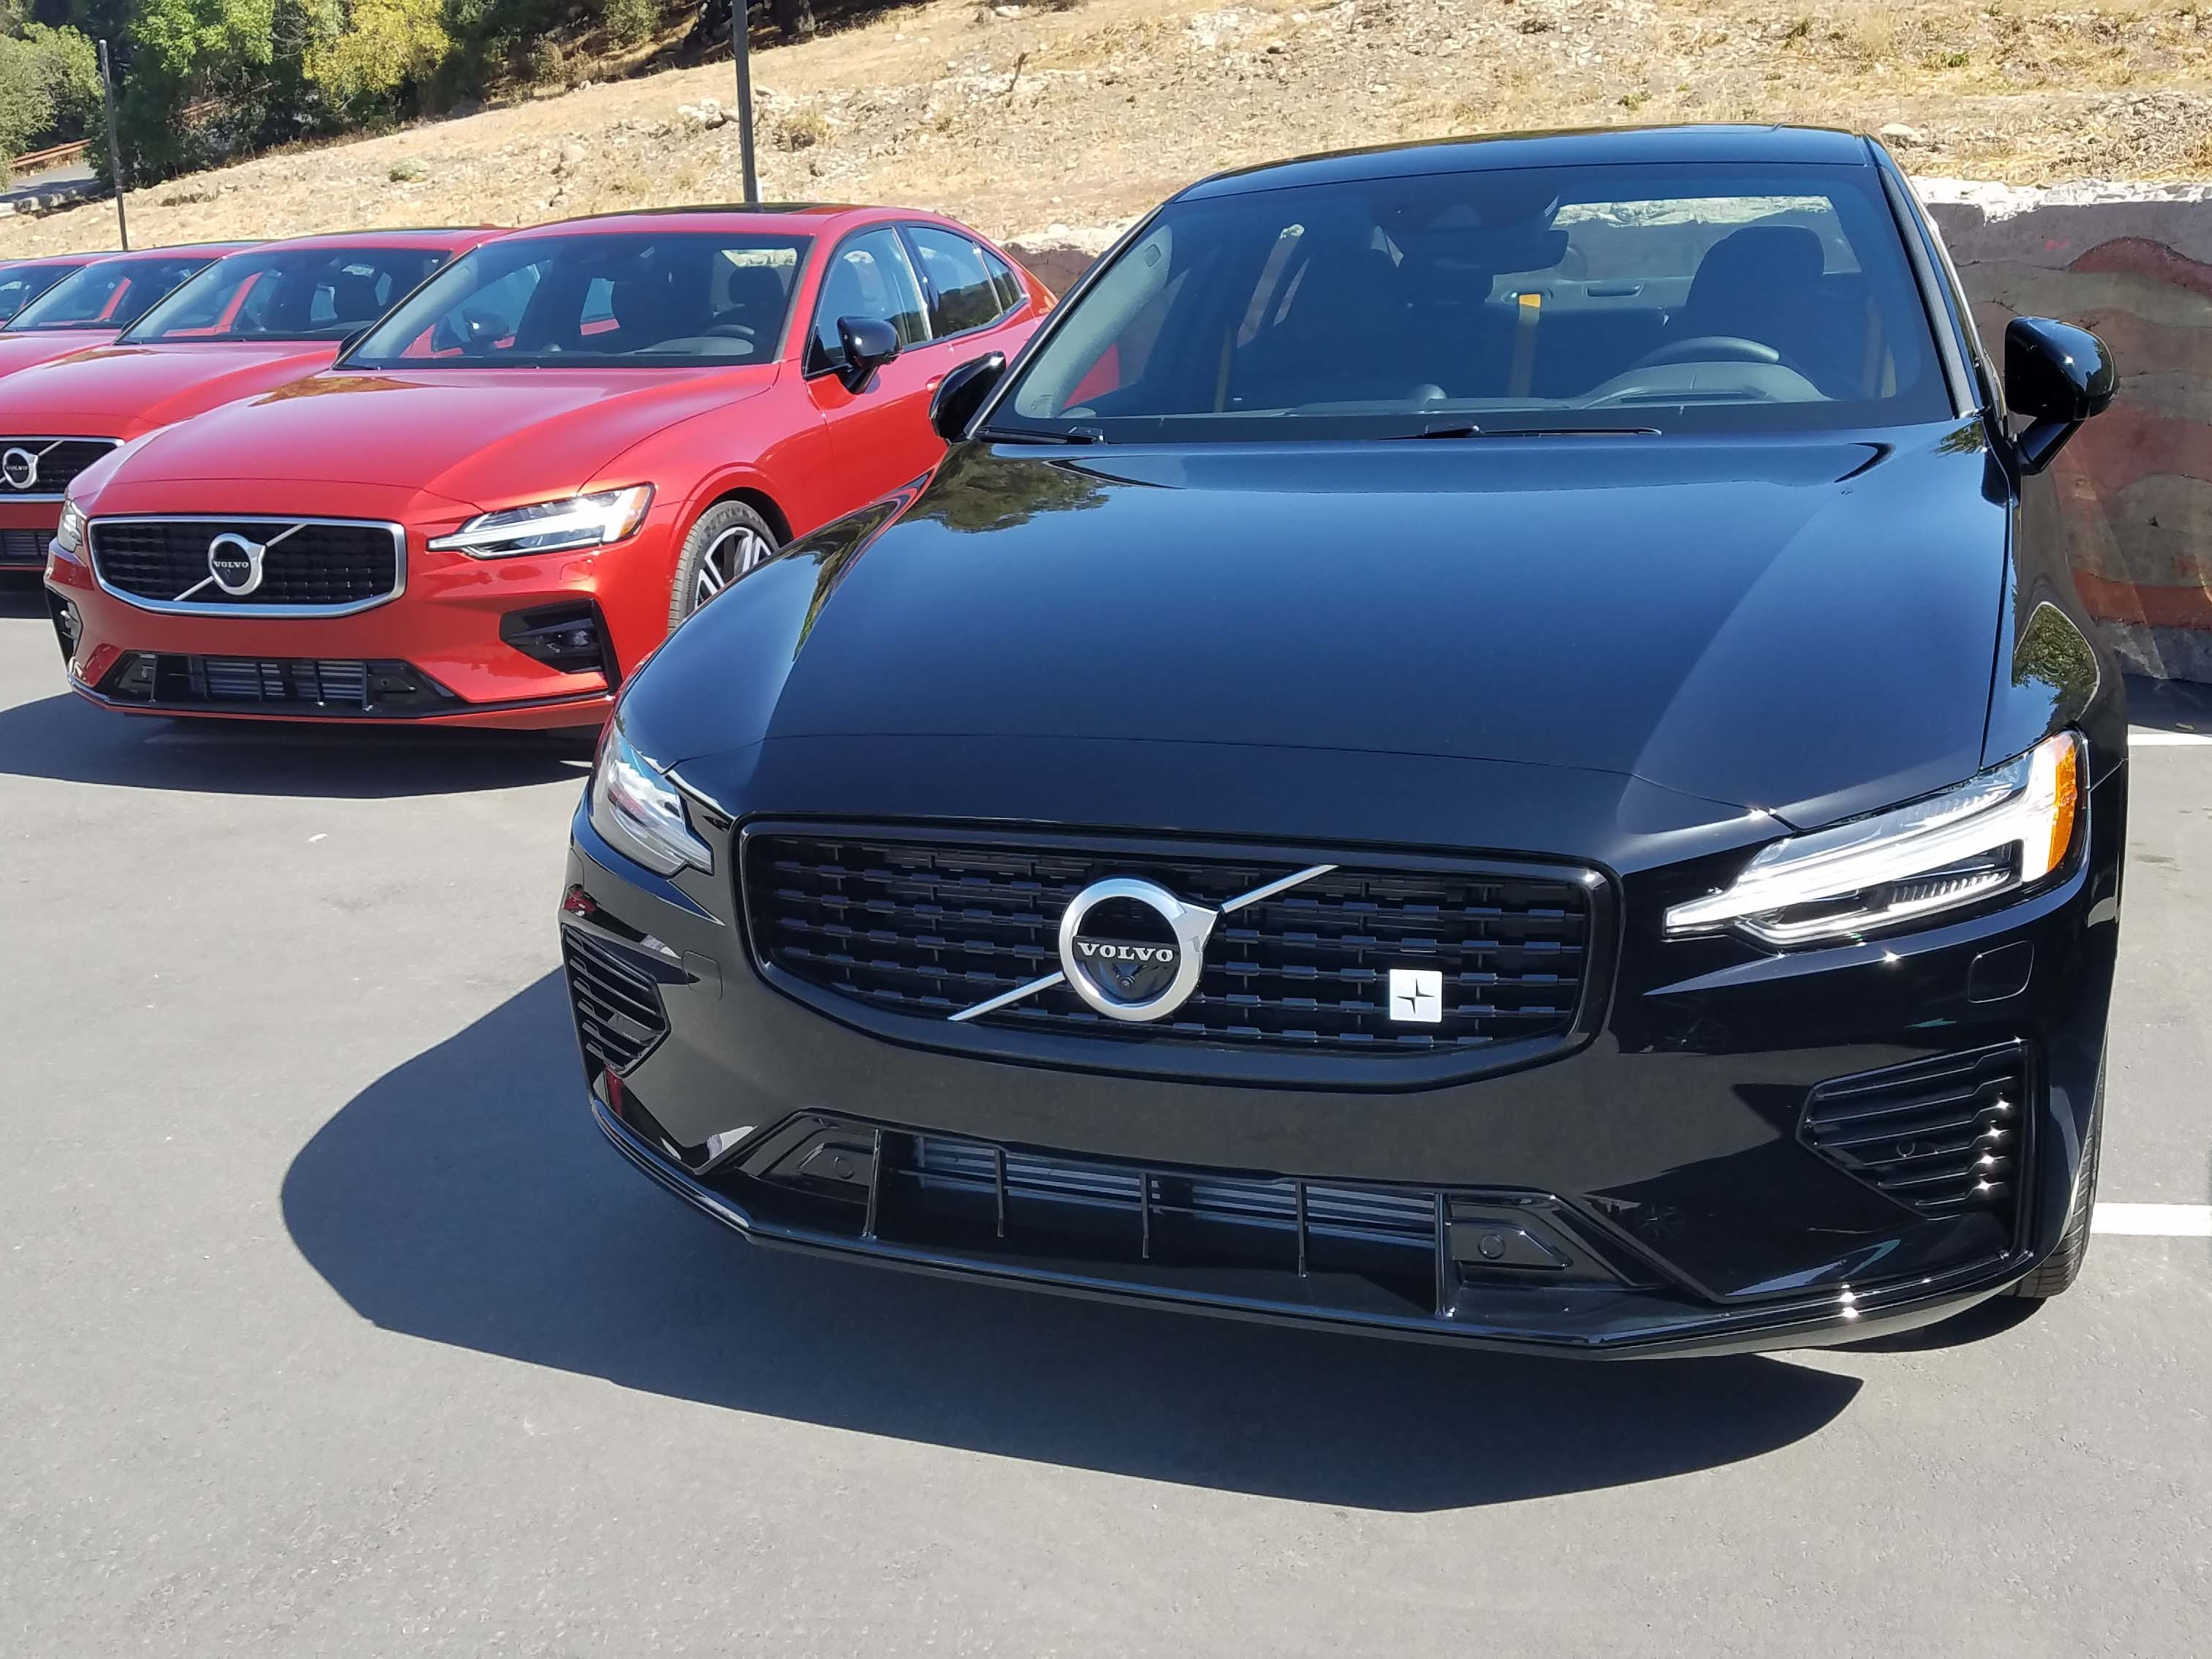 And now for something completely different. The Polestar edition of the 2019 Volvo S60 adds 15 horsepower to its T8 plugin drivetrain, as well as gold seat belts and unique wheels. Polestar is the brand's halo model.